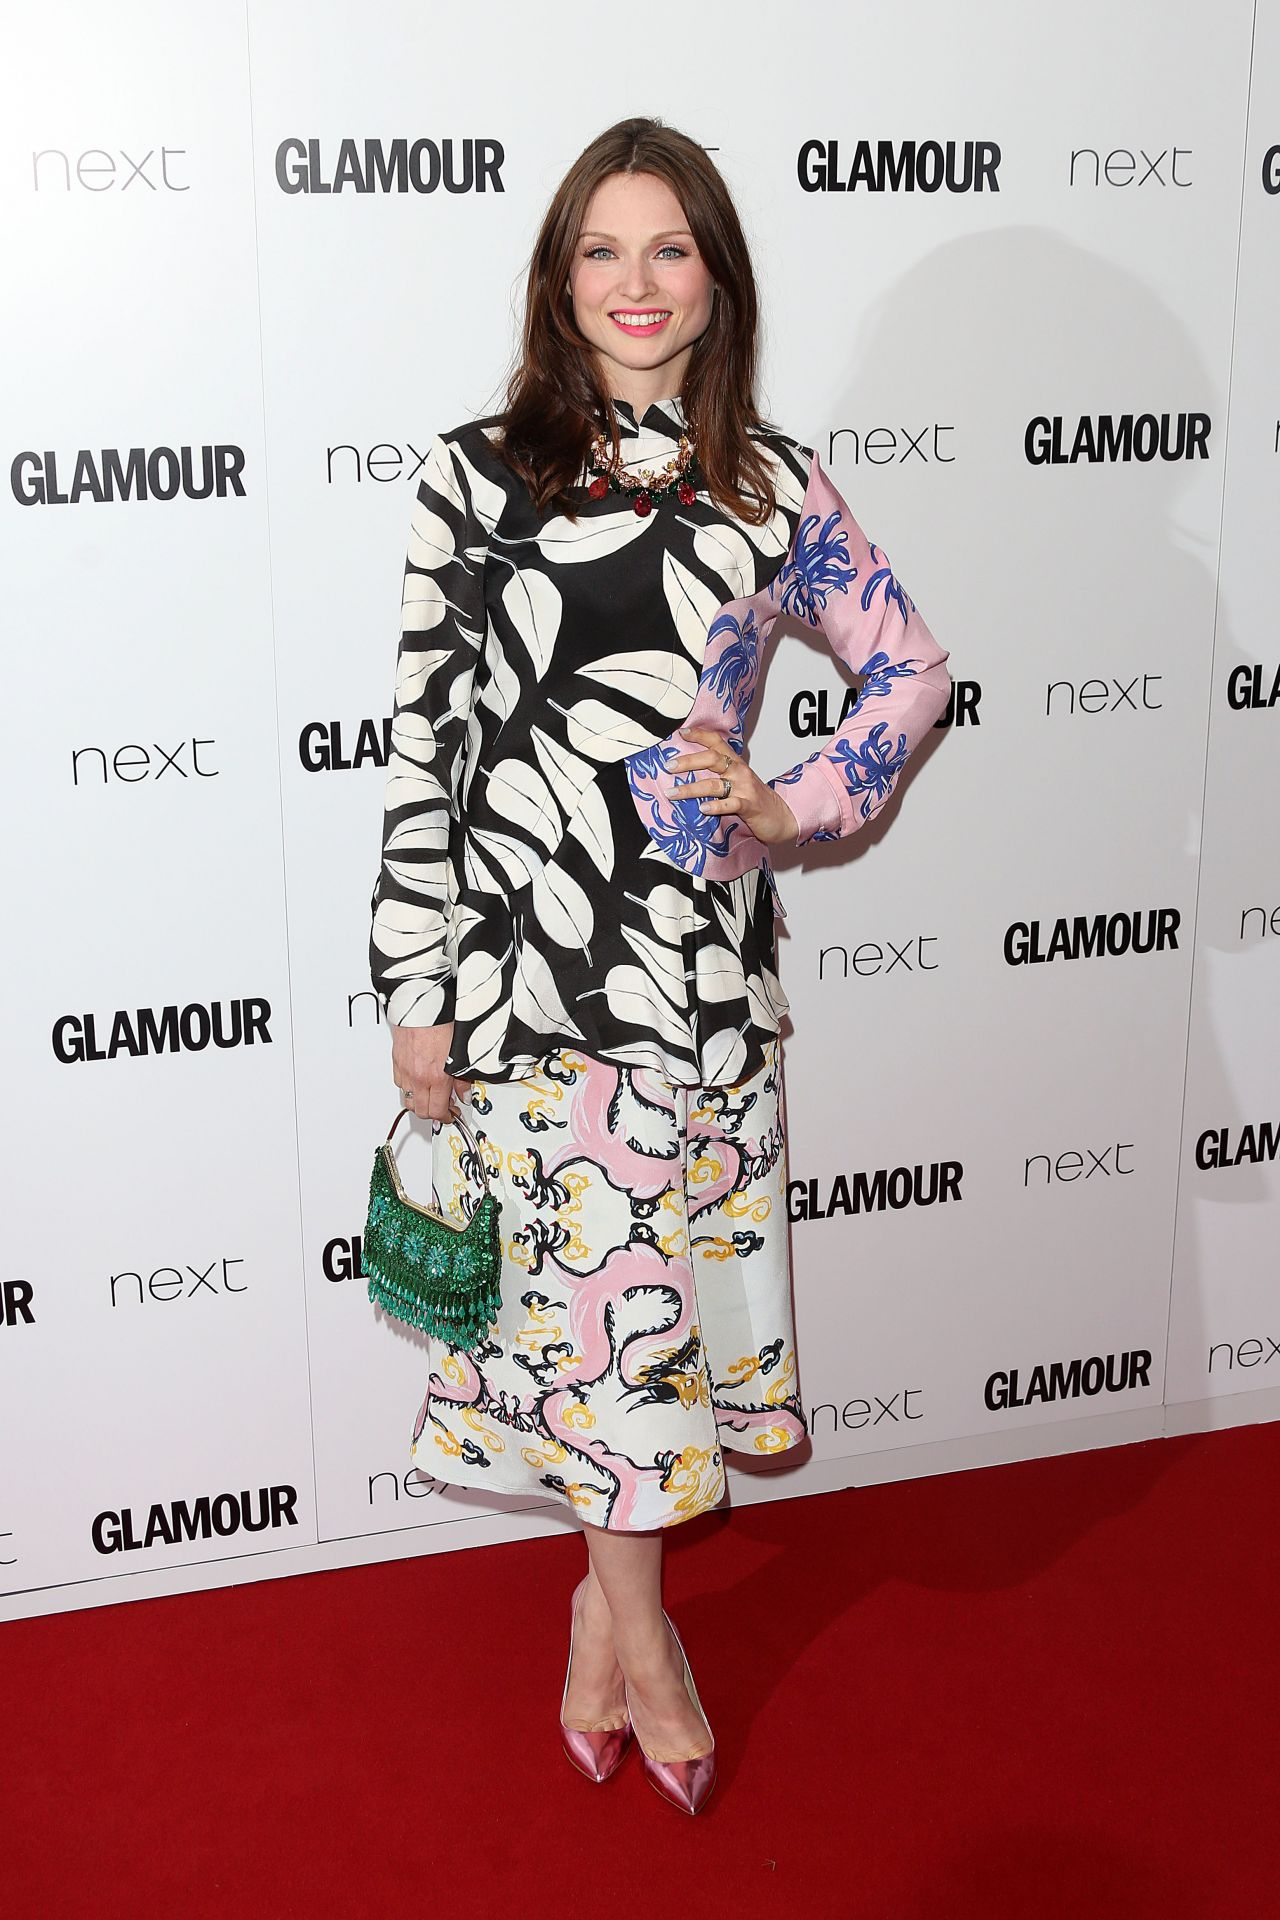 http://celebmafia.com/wp-content/uploads/2015/06/sophie-ellis-bextor-2015-glamour-women-of-the-year-awards-in-london_1.jpg